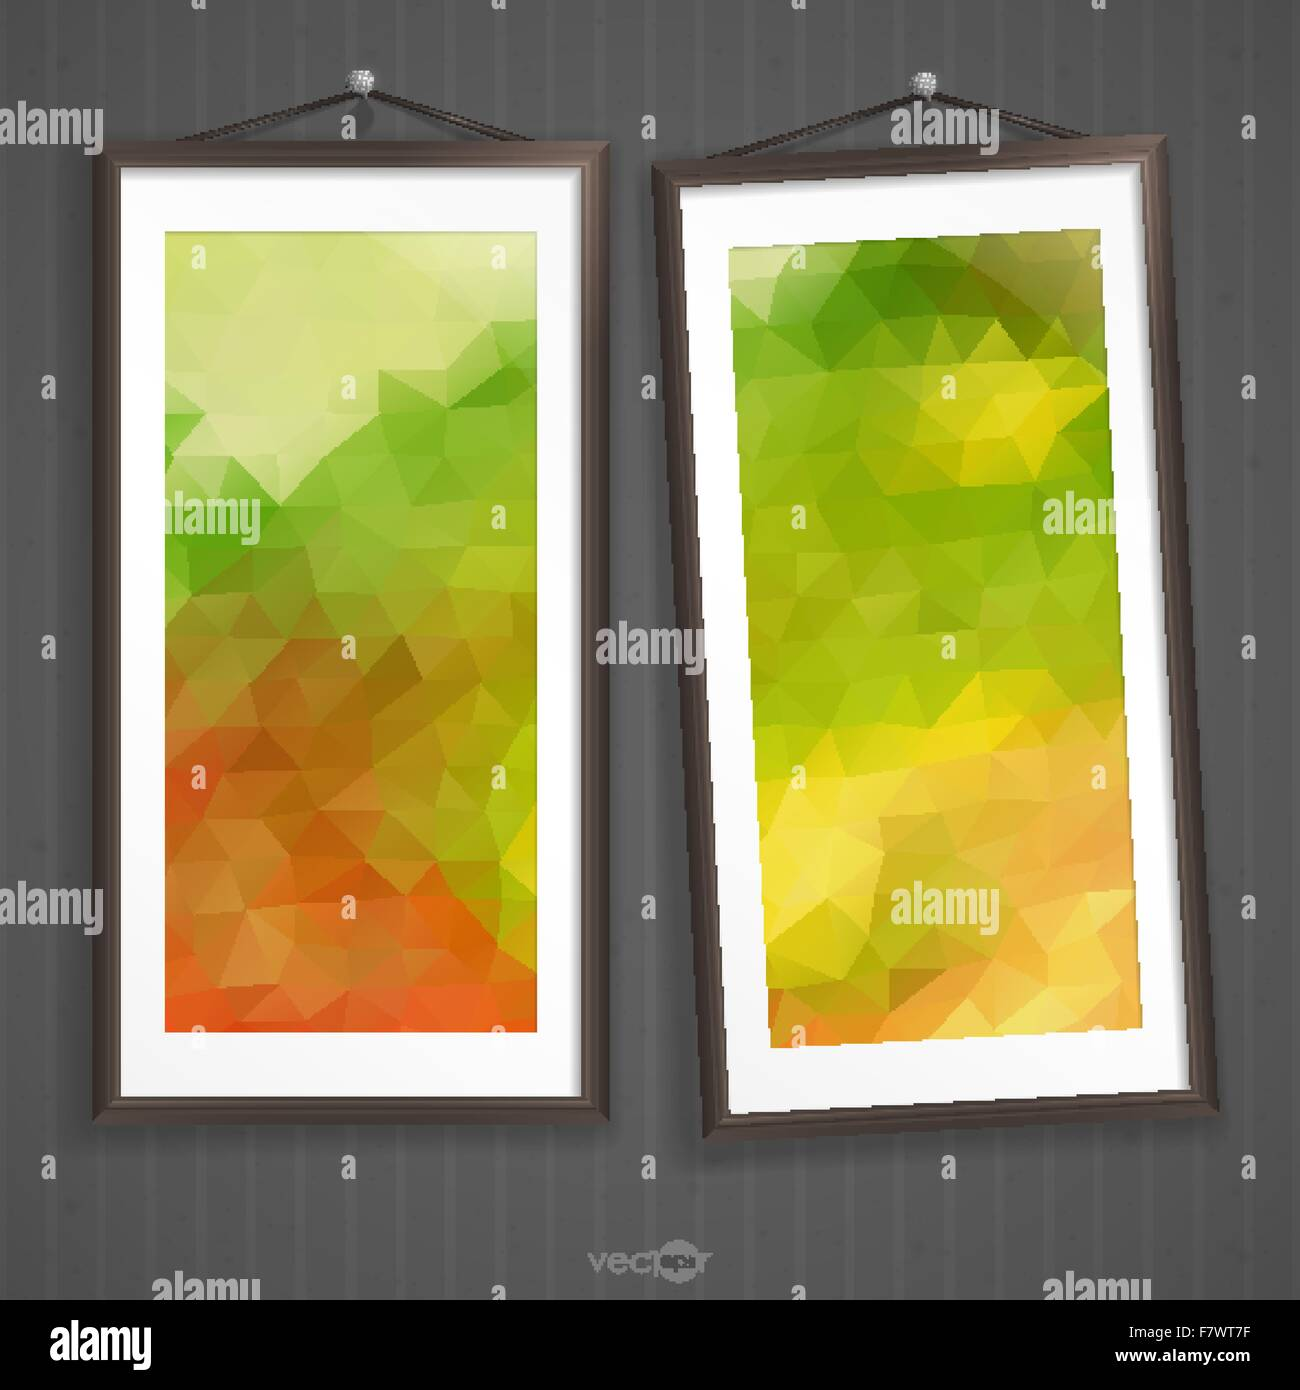 Two Frames Of Picture On A Striped Old Wall Stock Vector Art ...